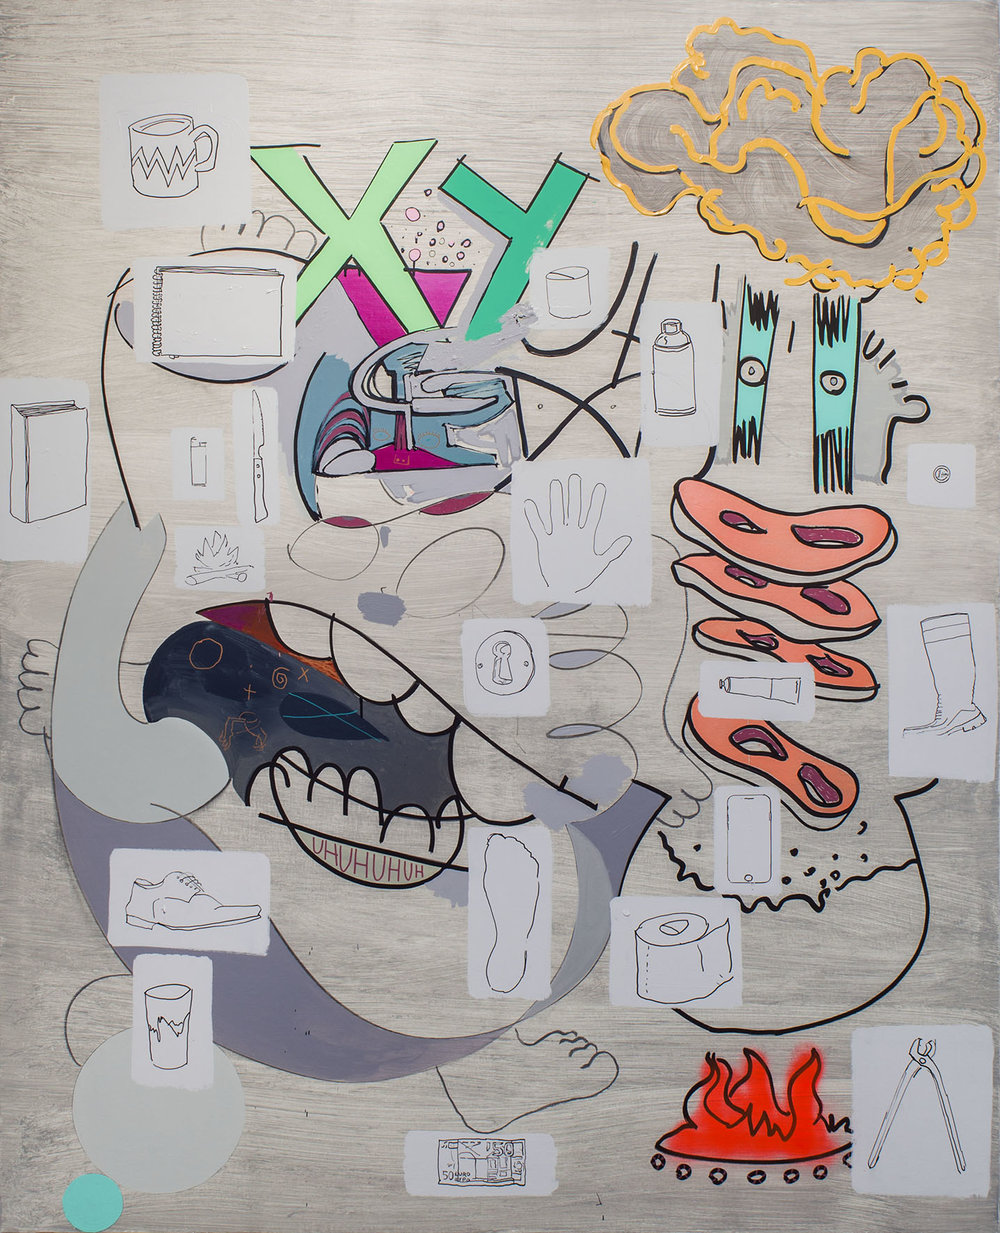 Glups 200x162 mixed on canvas